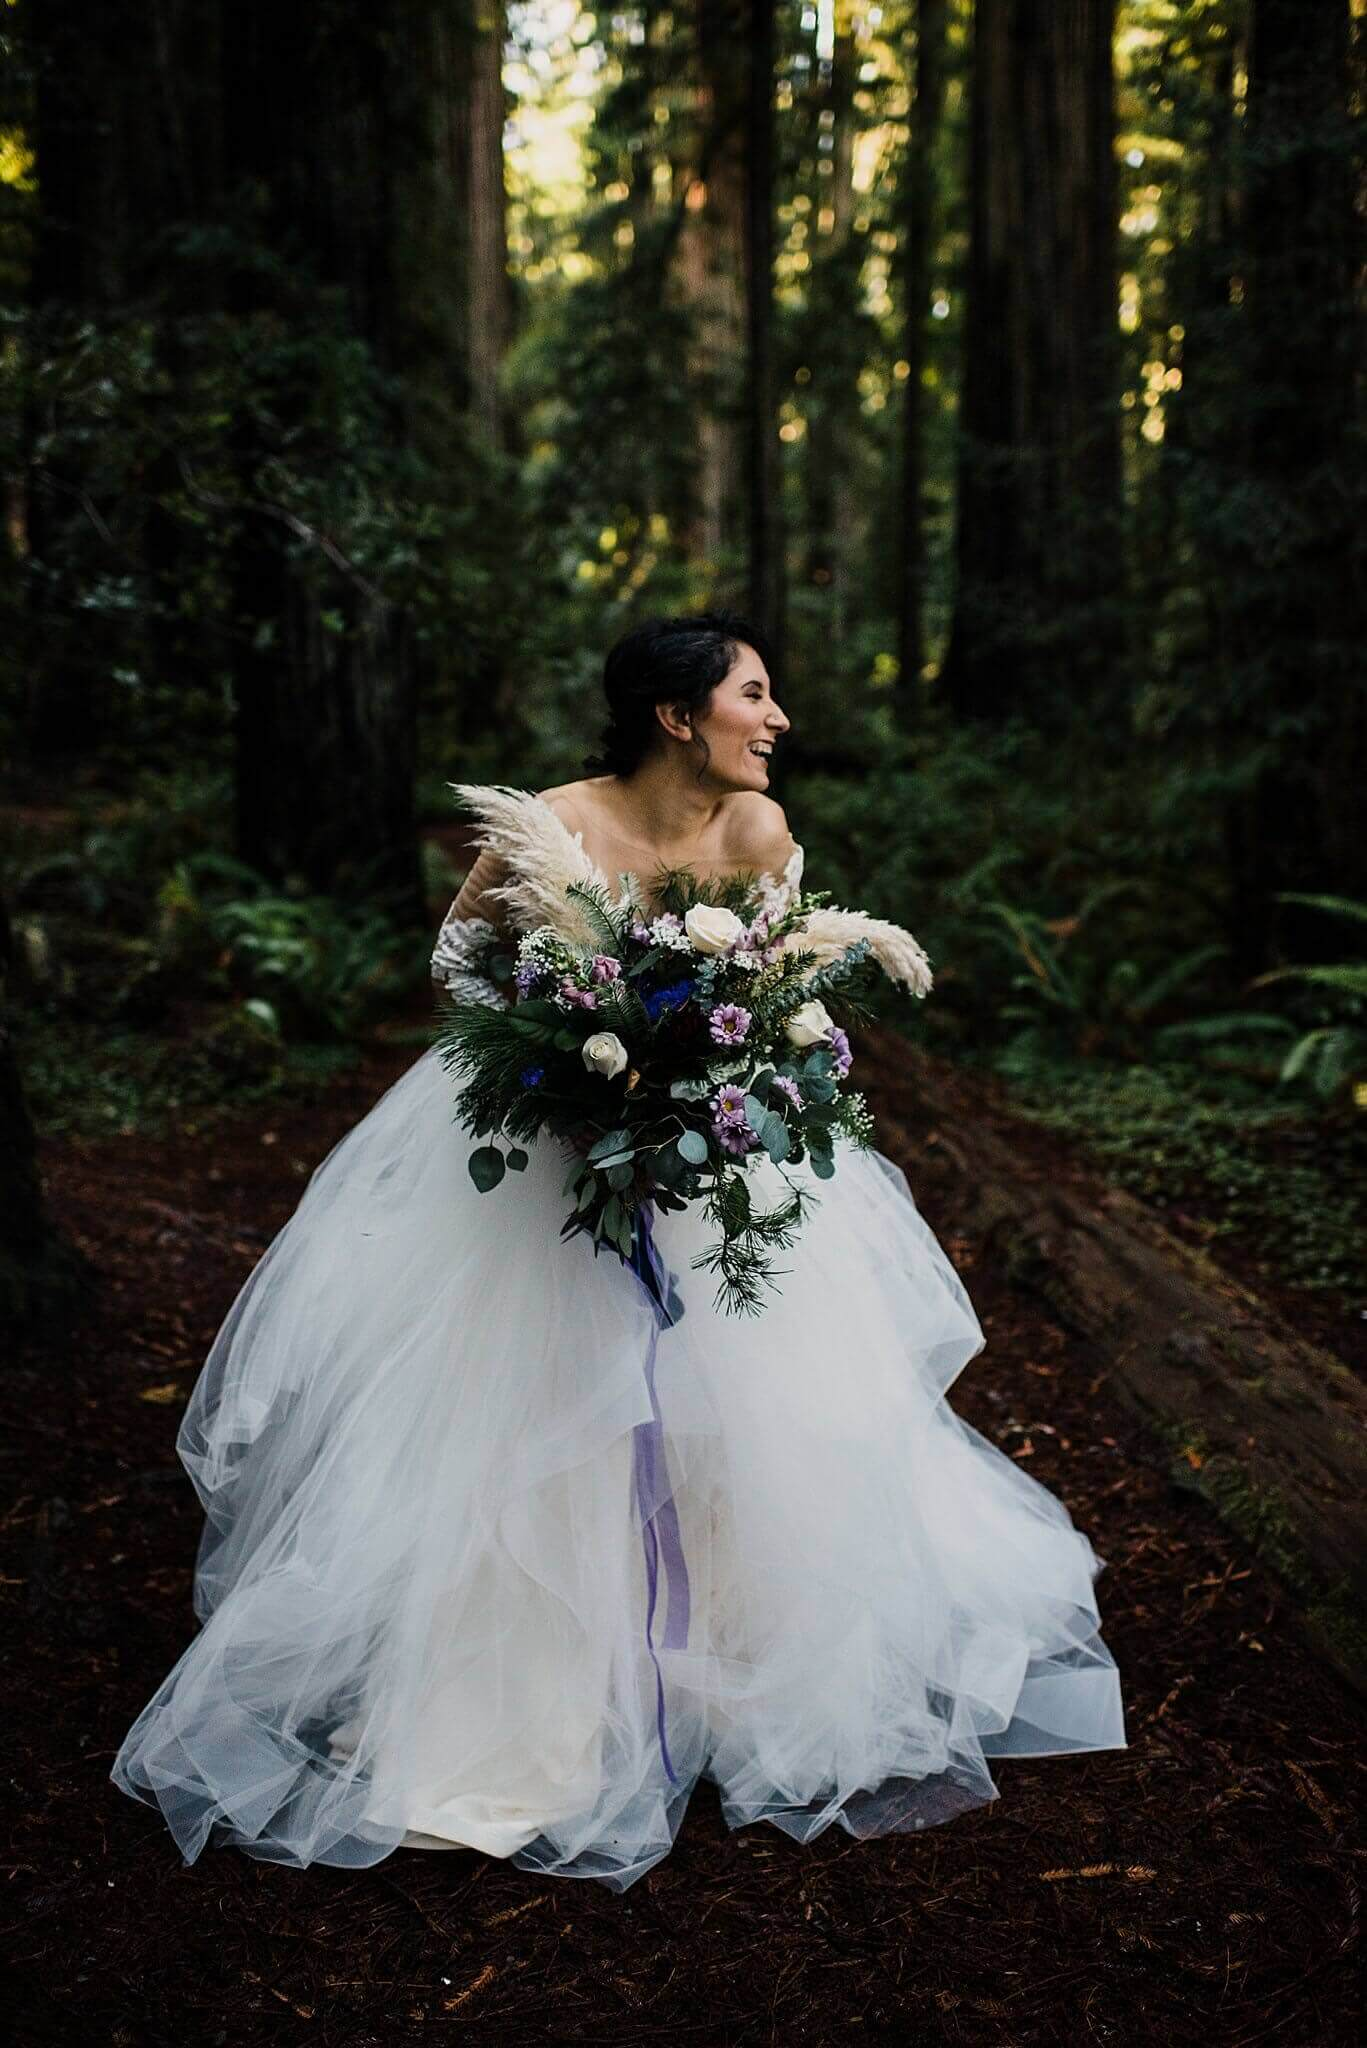 S Photography,adventure,adventure photographer,boho,elope,elopement,hayley paige,indie,jedediah smith,oregon,oregon coast,redwoods,roseburg,samuel h boardman,